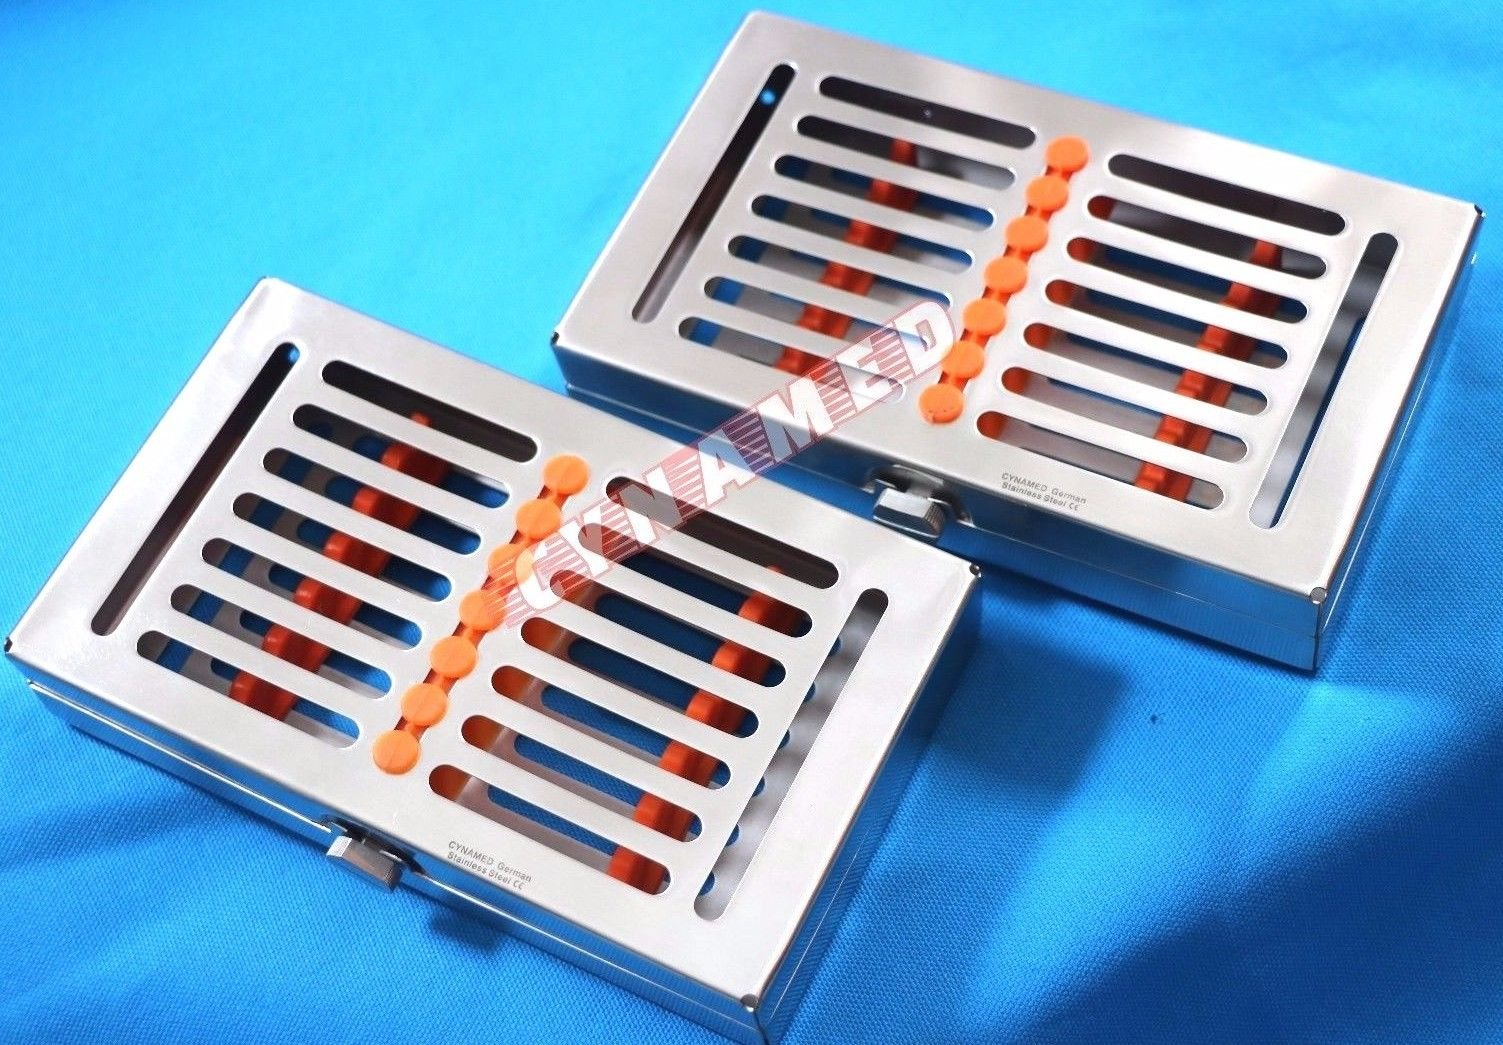 GERMAN STAINLESS 2 HEAVY DUTY DENTAL AUTOCLAVE STERILIZATION CASSETTE BOX TRAY FOR 7 INSTRUMENT-A+QUALITY BUTTON TYPE ( CYNAMED BRAND )